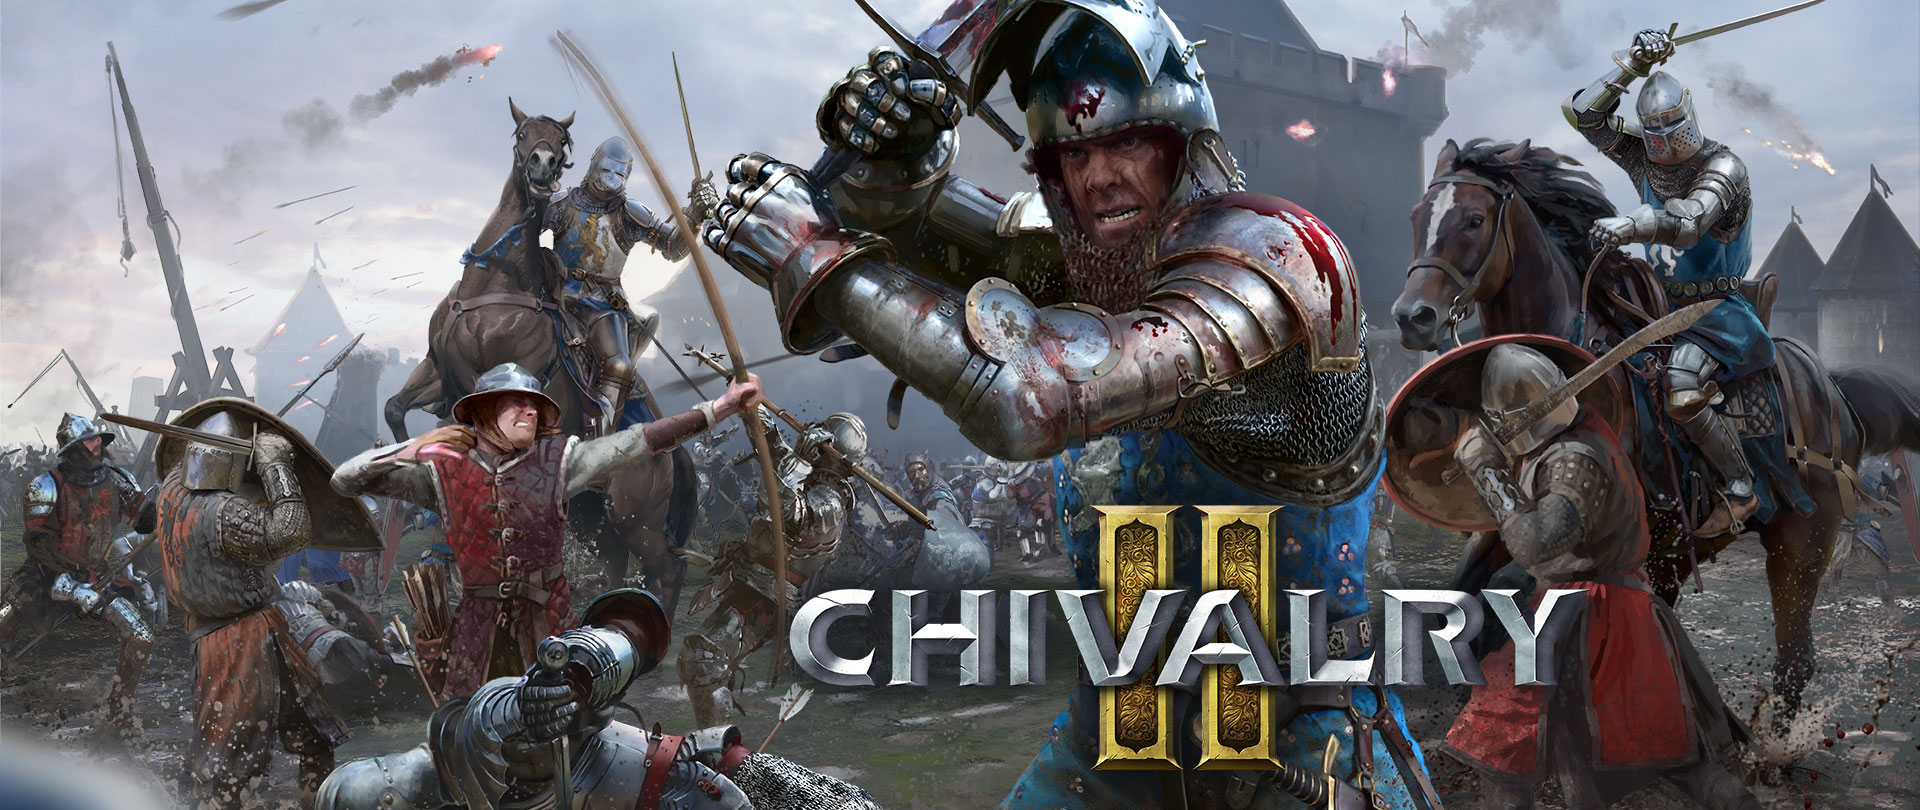 Chivalry 2 graphics tuning for a weak PC